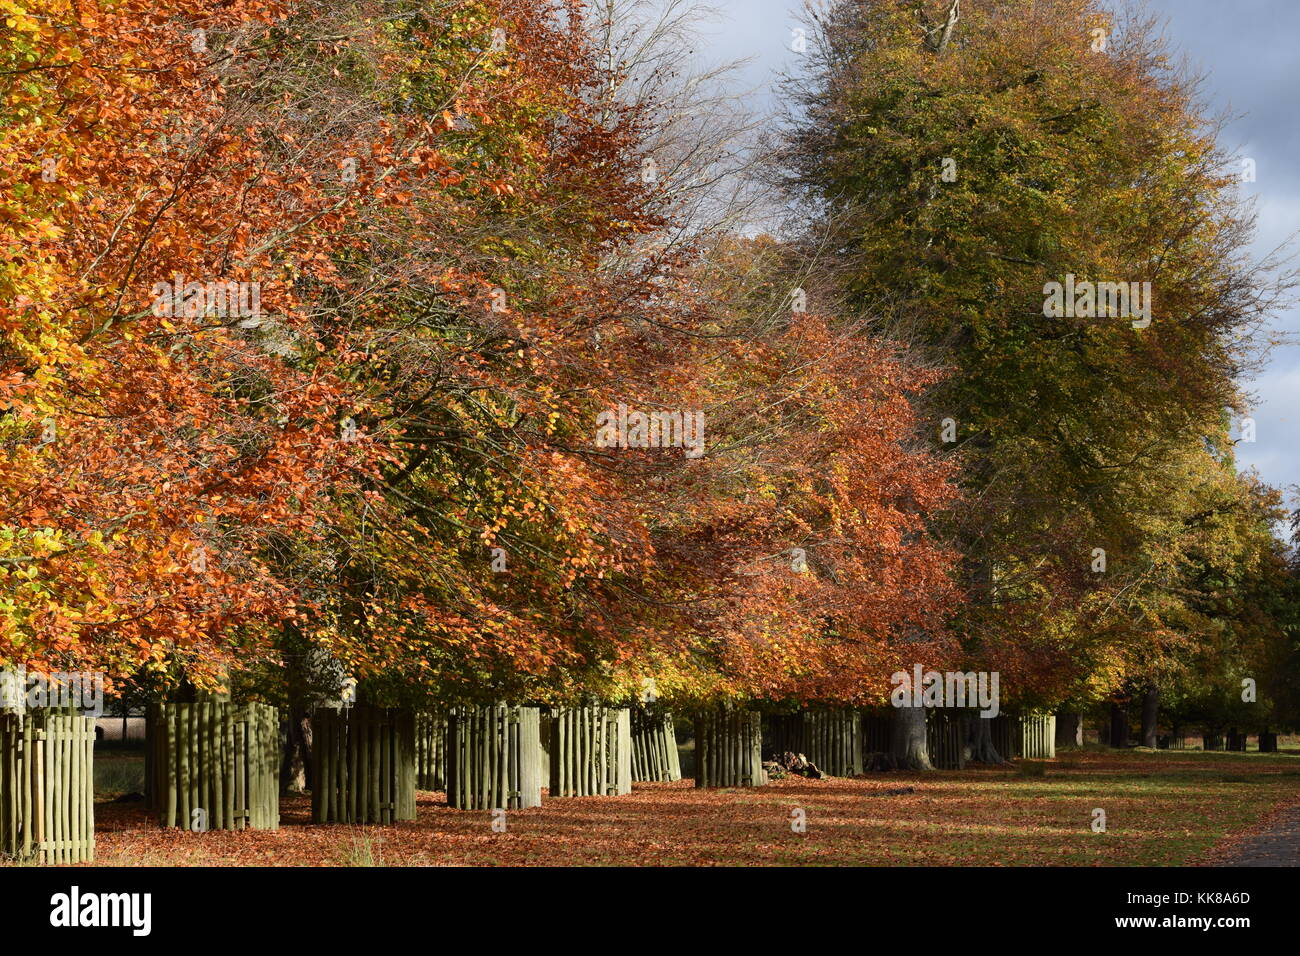 Dunham Massey Autumn Red Leaves on Trees - Stock Image